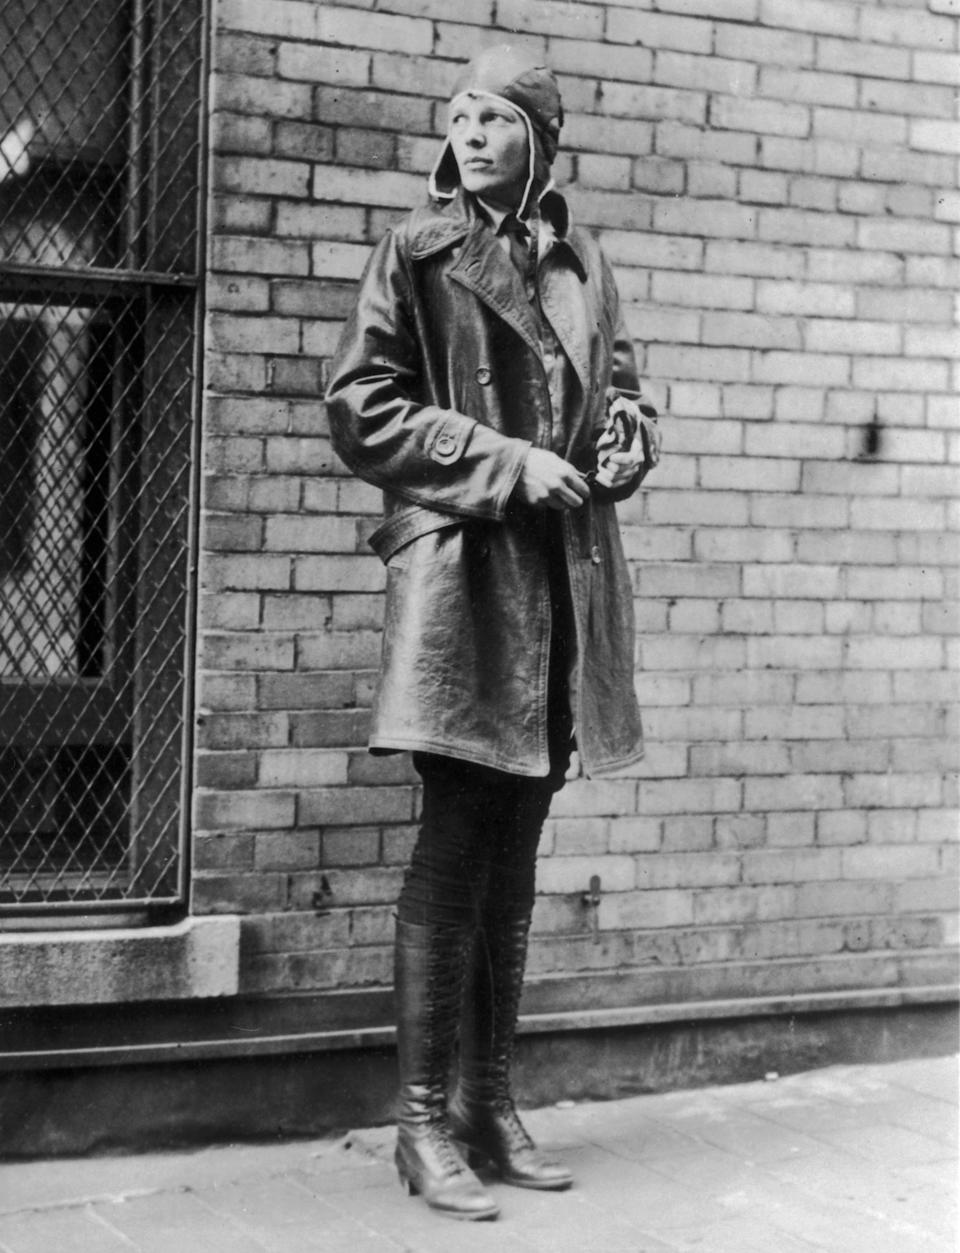 Aviatrix Amelia Earhart (1898 – 1937) in Newfoundland. Noted for her flights across the Atlantic and Pacific oceans, Earhart disappeared without trace in her attempt to fly around the world. (Photo by Topical Press Agency/Getty Images)